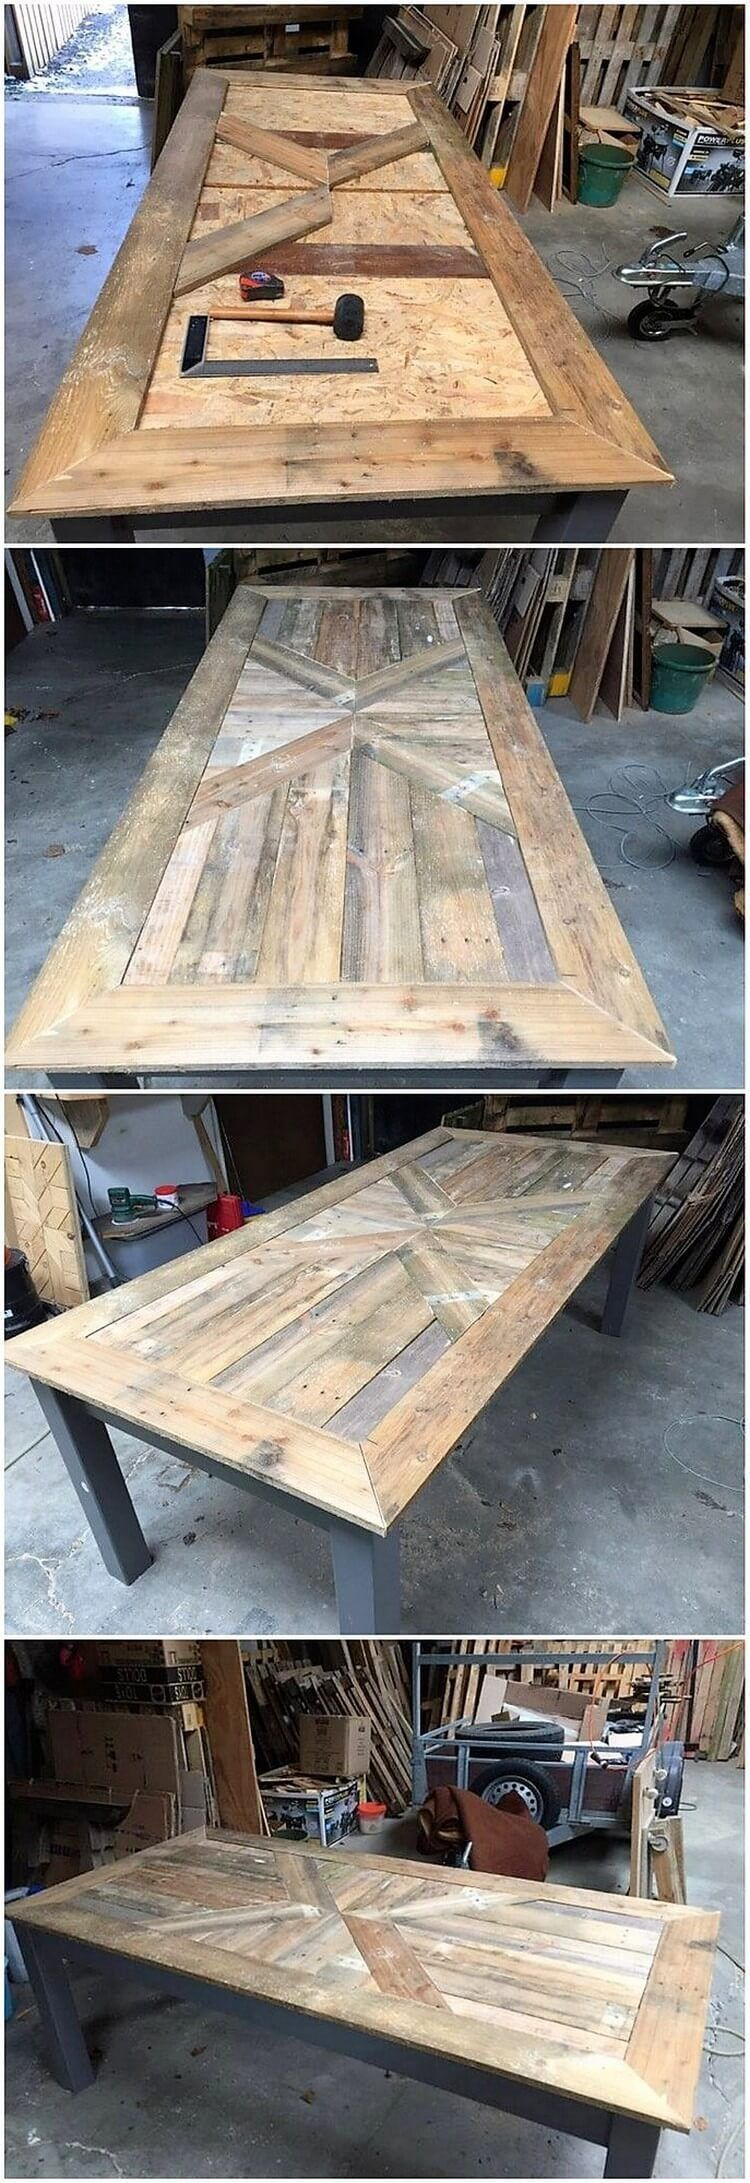 Here comes the ideal use of the table design as through ...